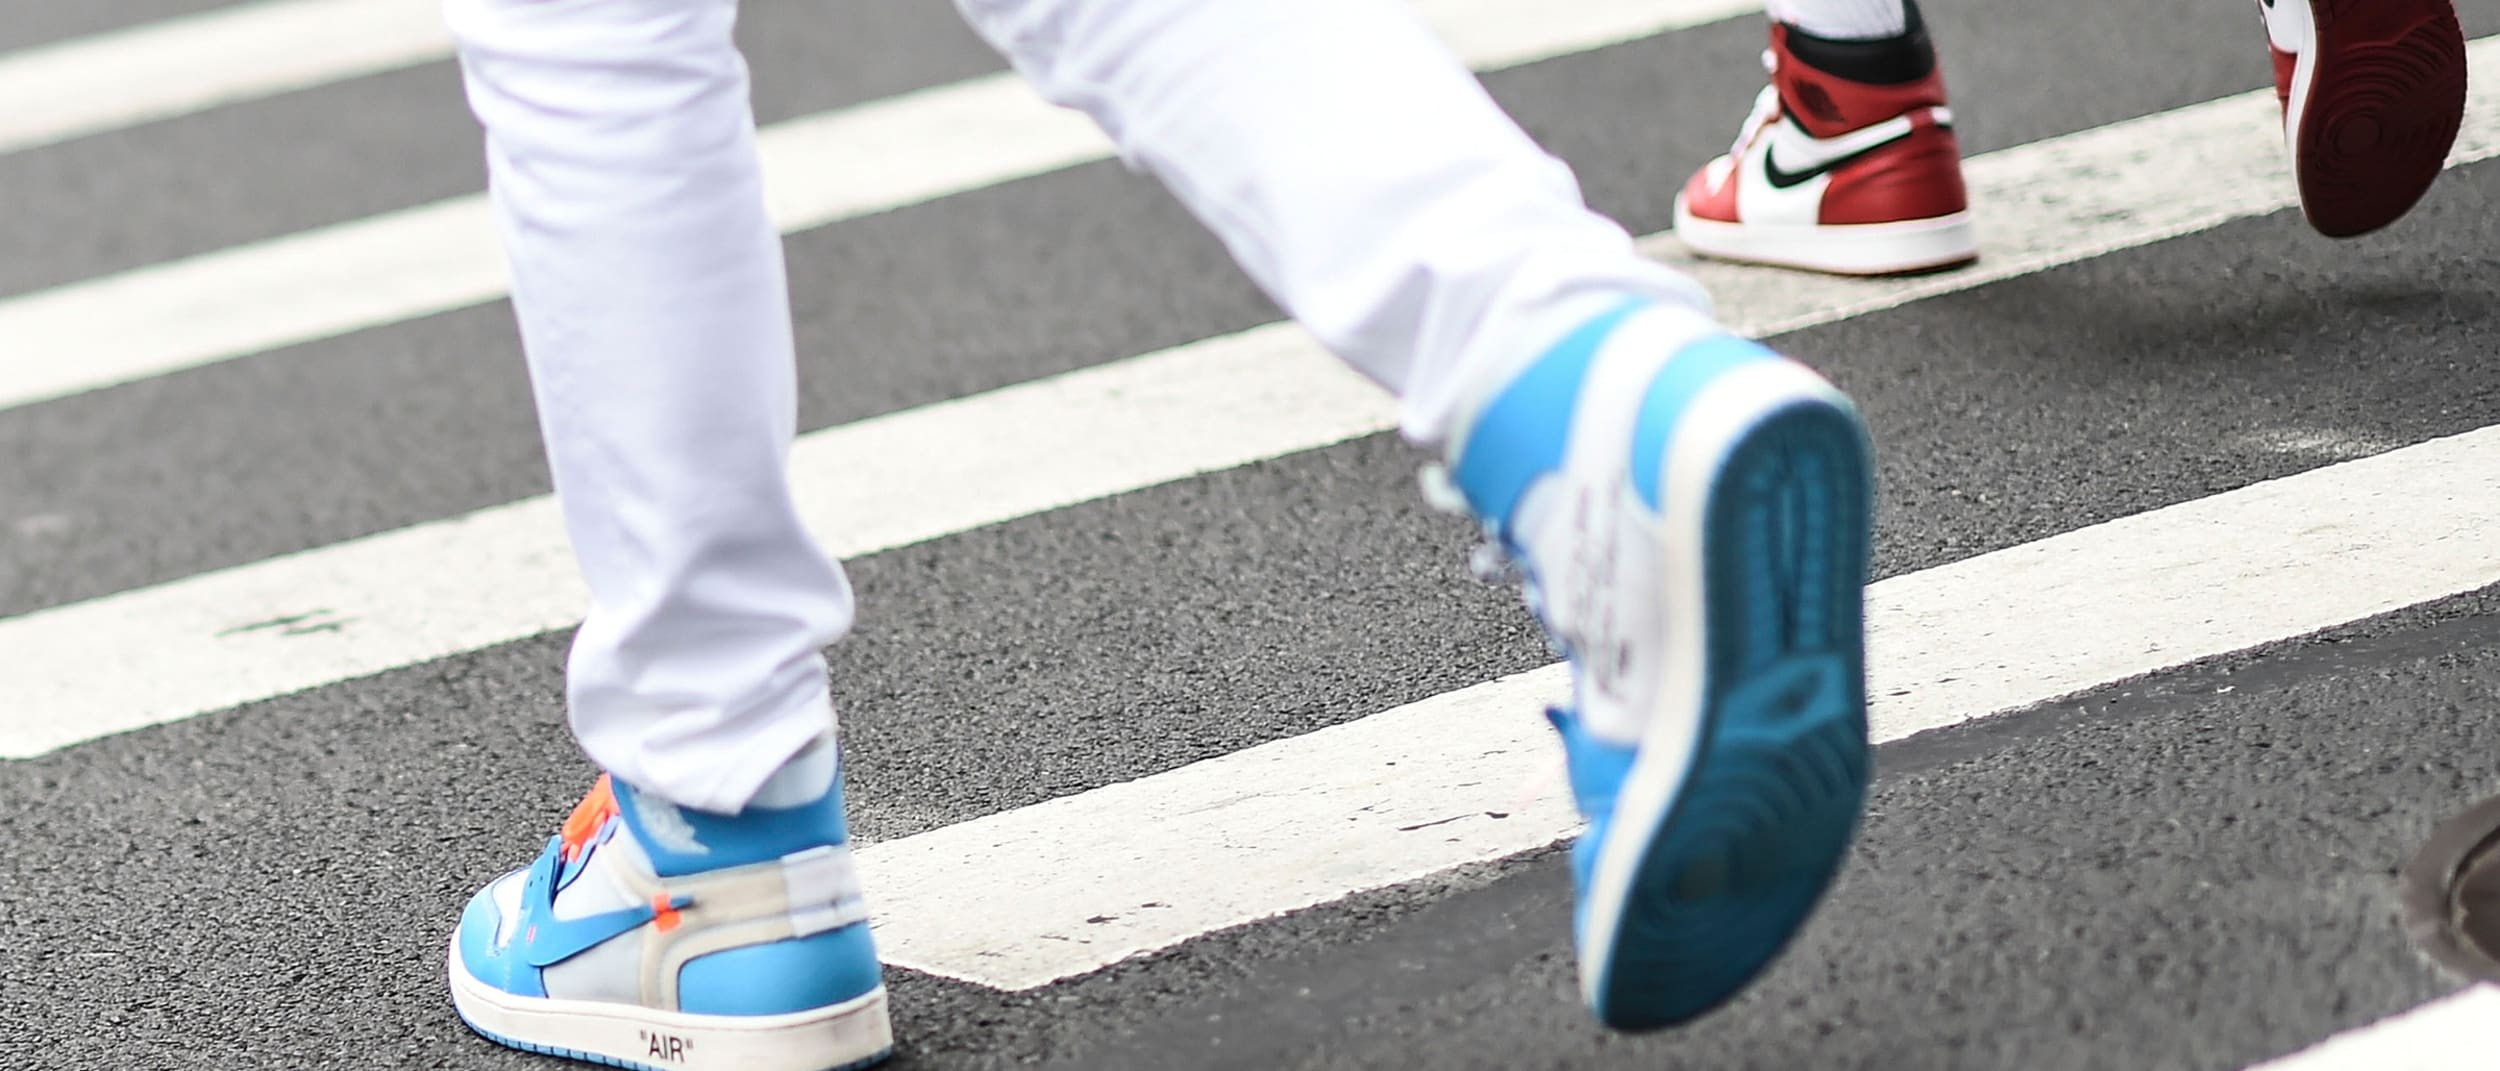 Sneaker game: 5 sneaker styles you need this season